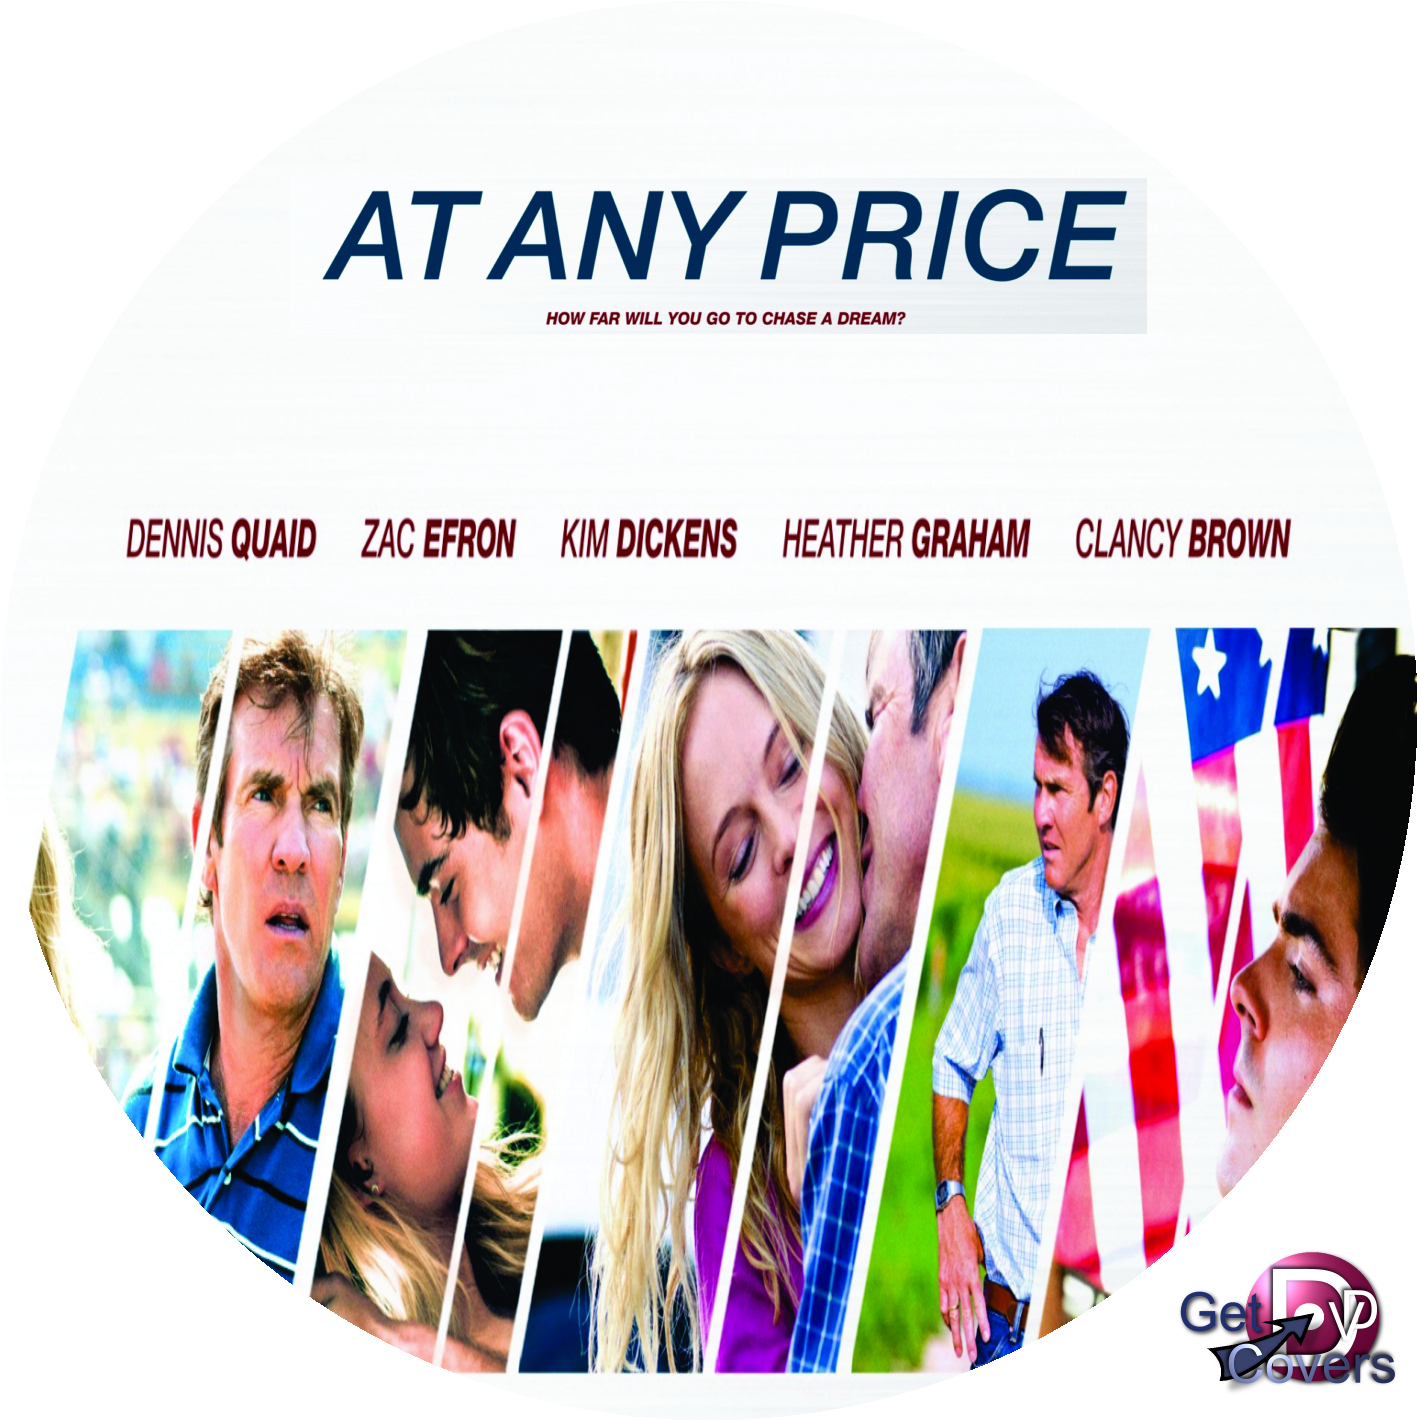 At Any Price 2012 movie